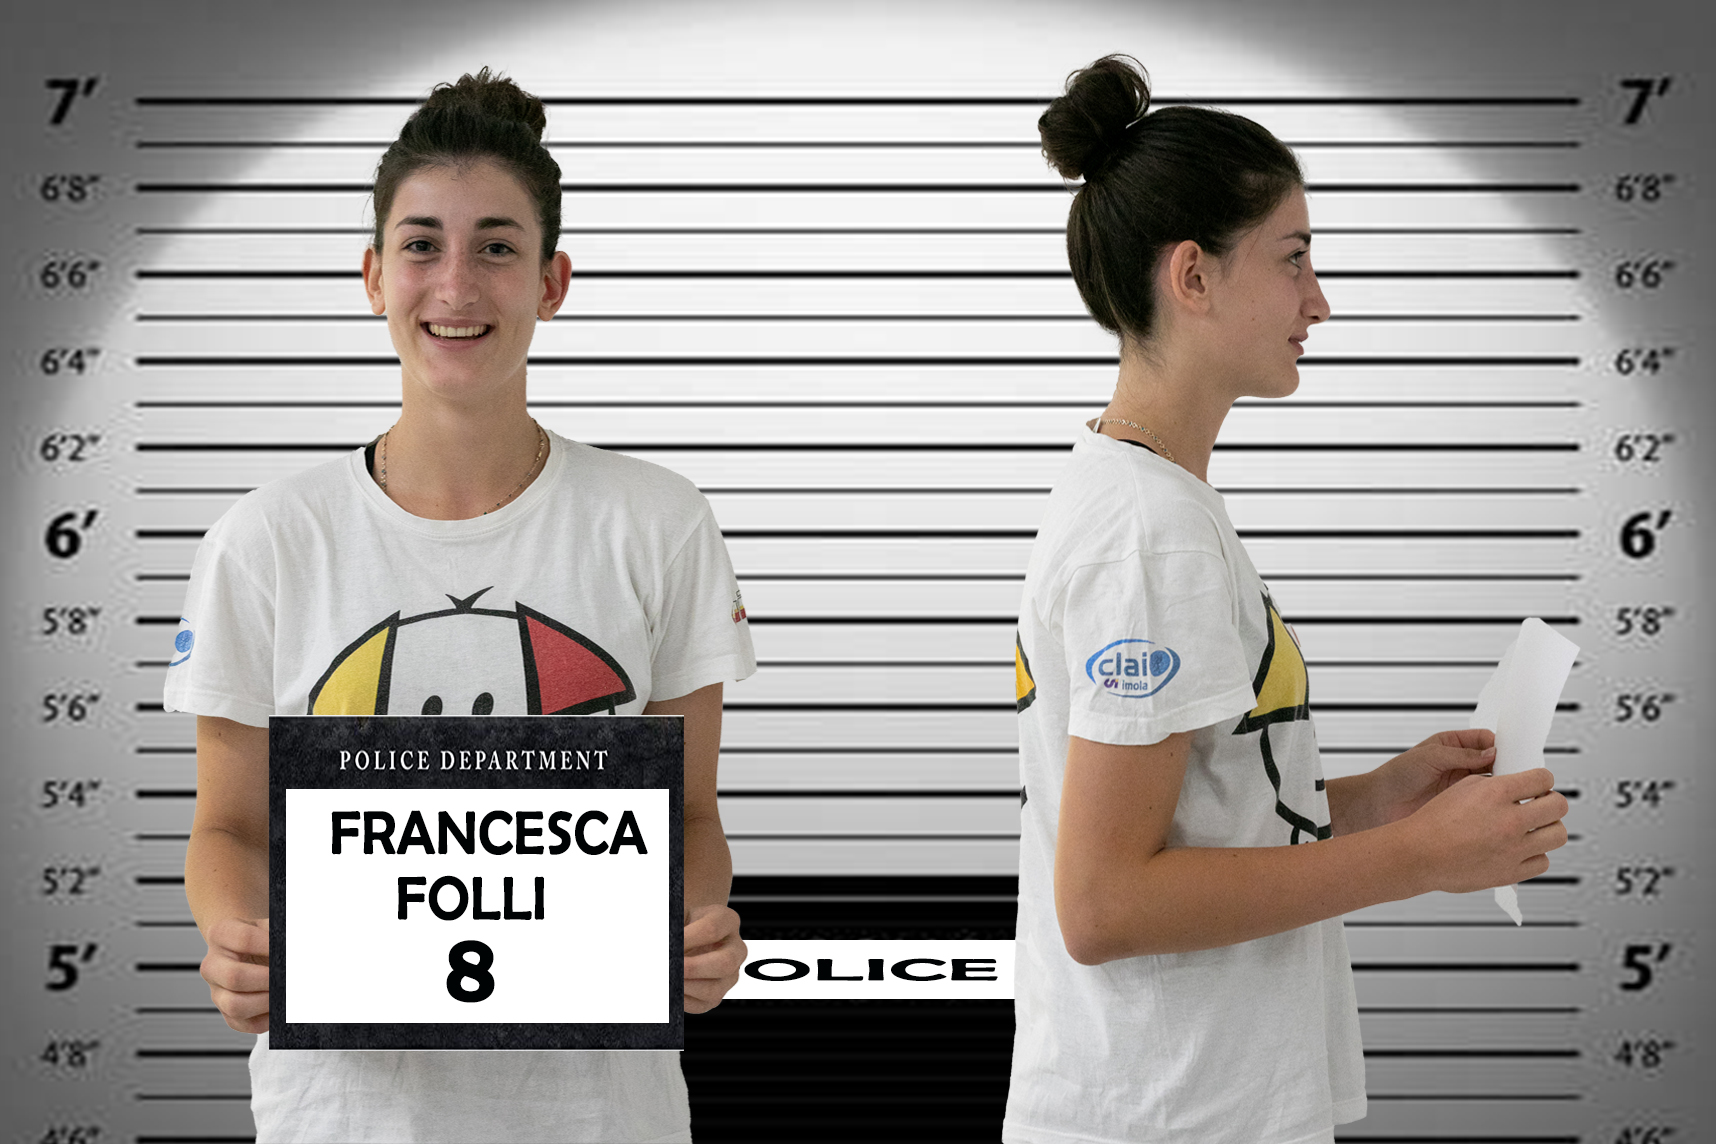 Sotto-interrogatorio: Francesca Folli